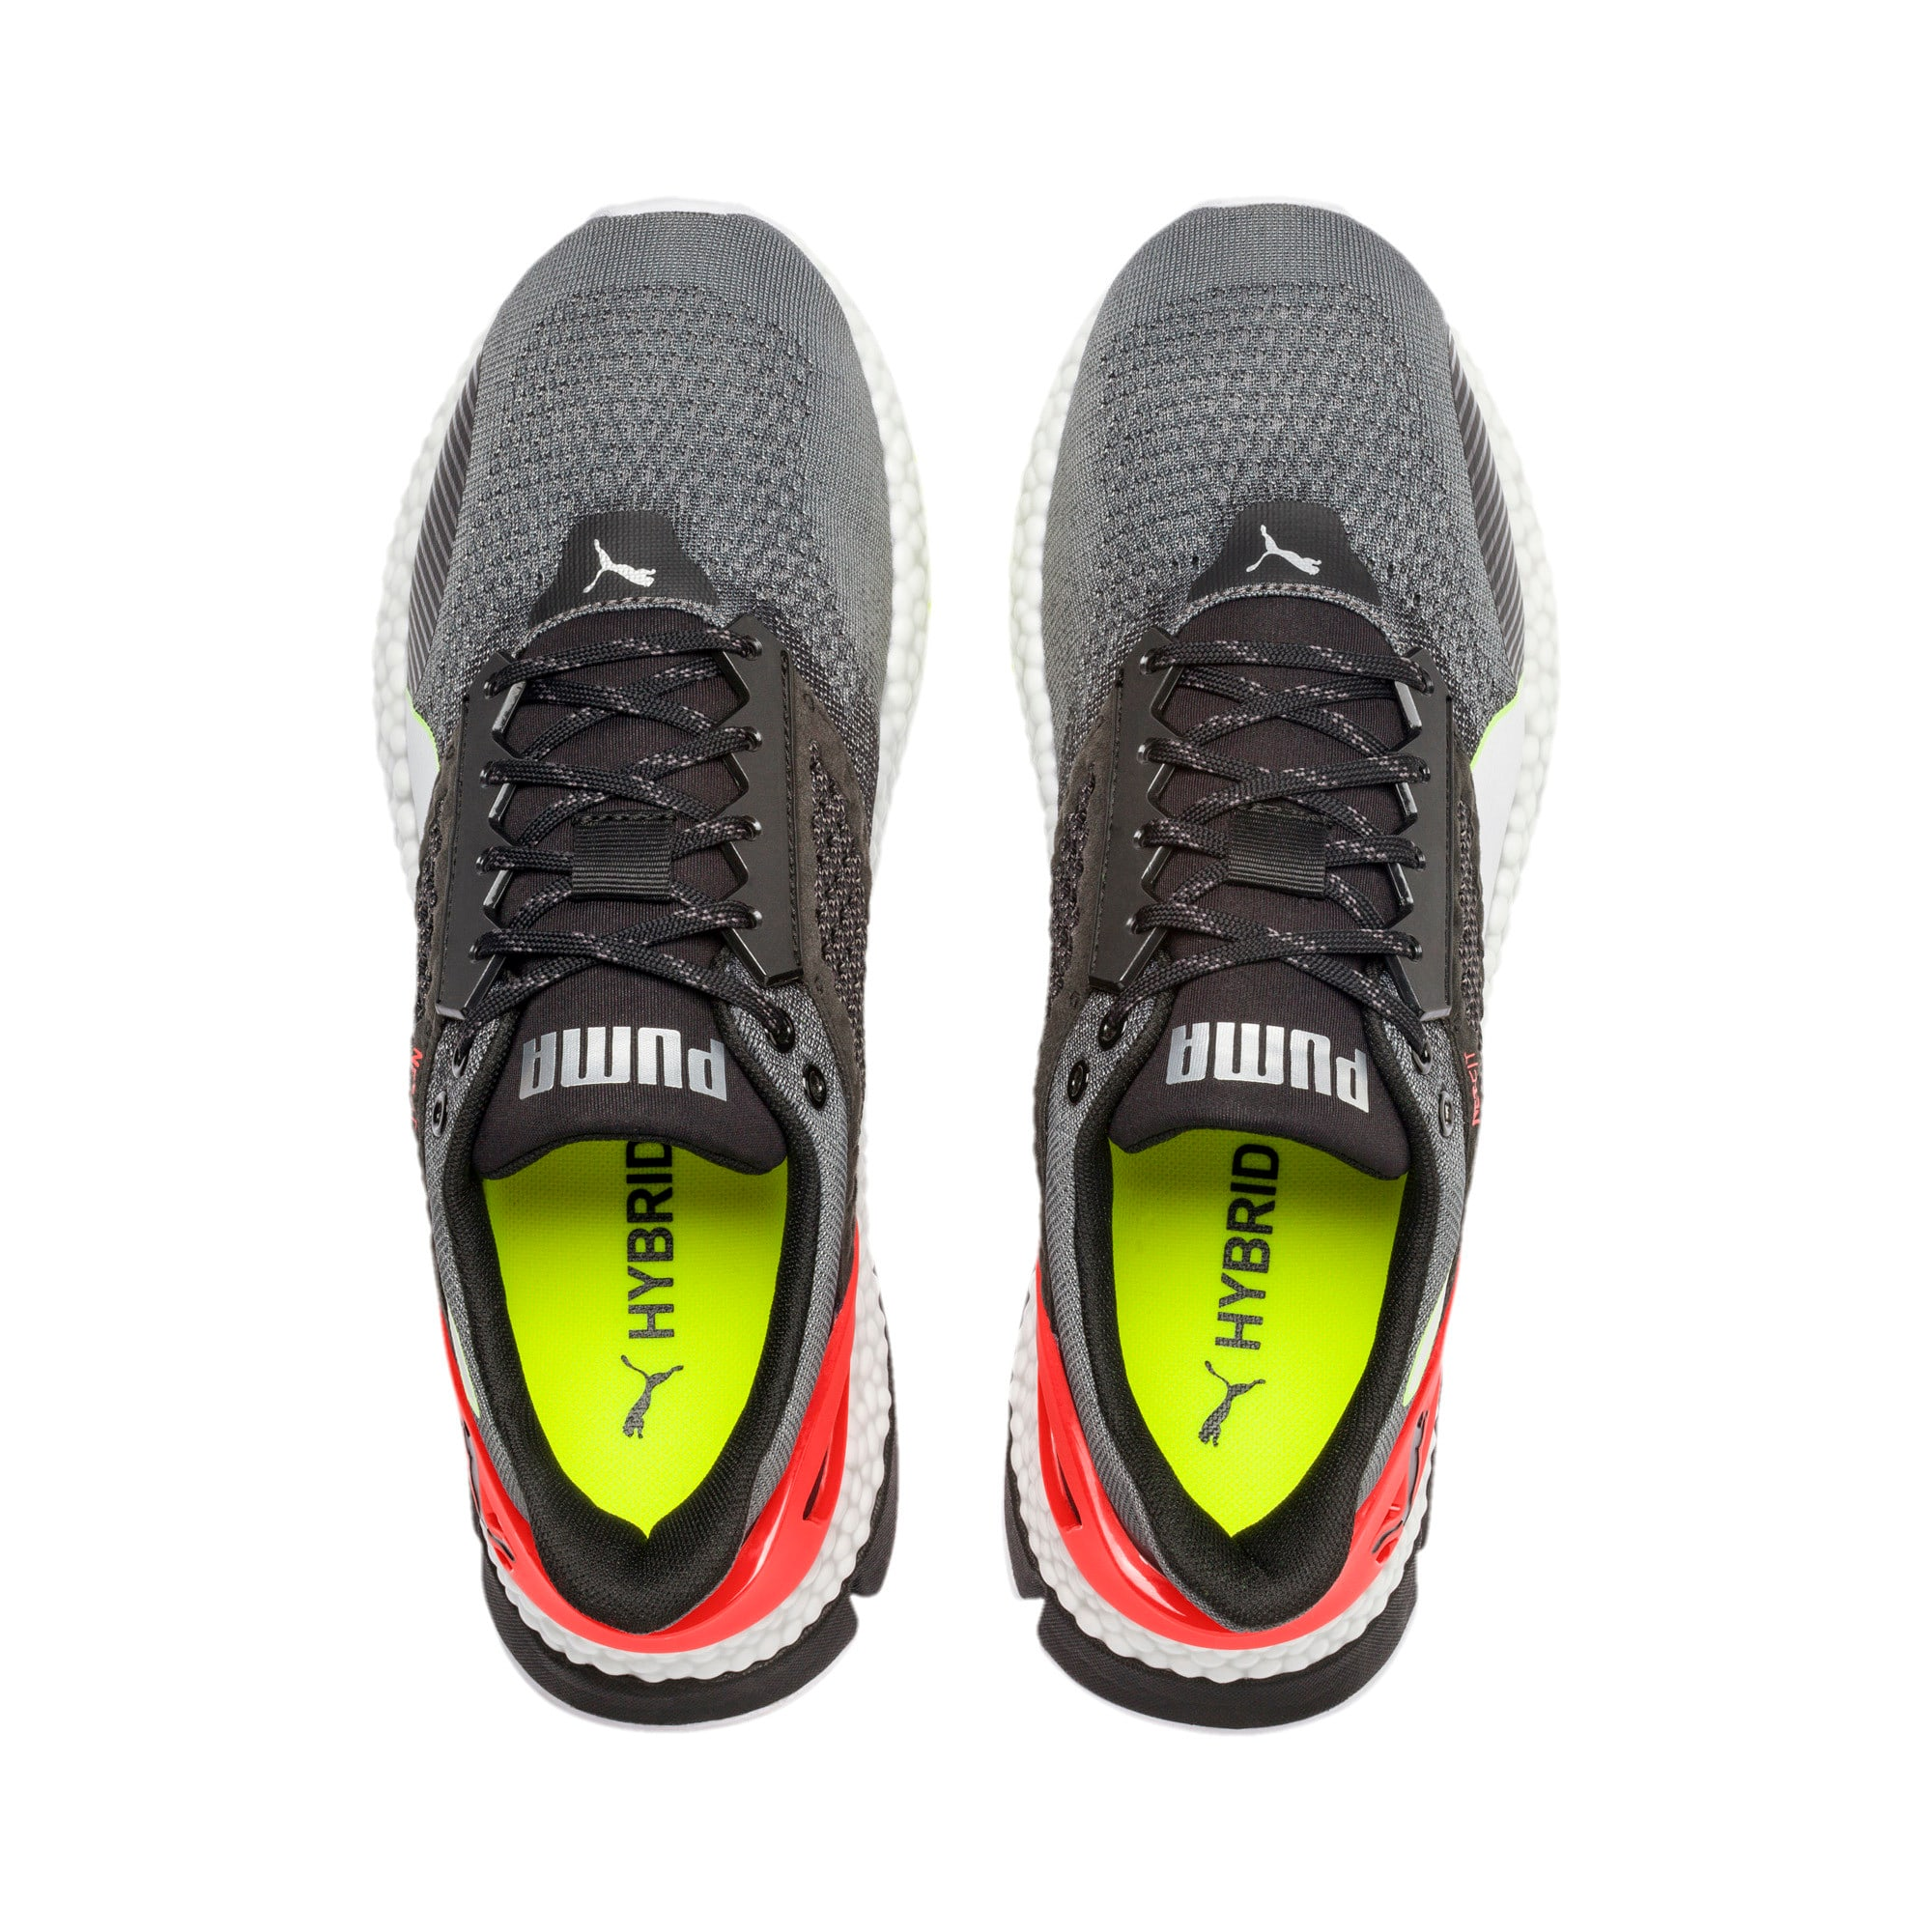 Thumbnail 8 of HYBRID NETFIT Astro Men's Running Shoes, CASTLEROCK-Puma Blck-Ngy Red, medium